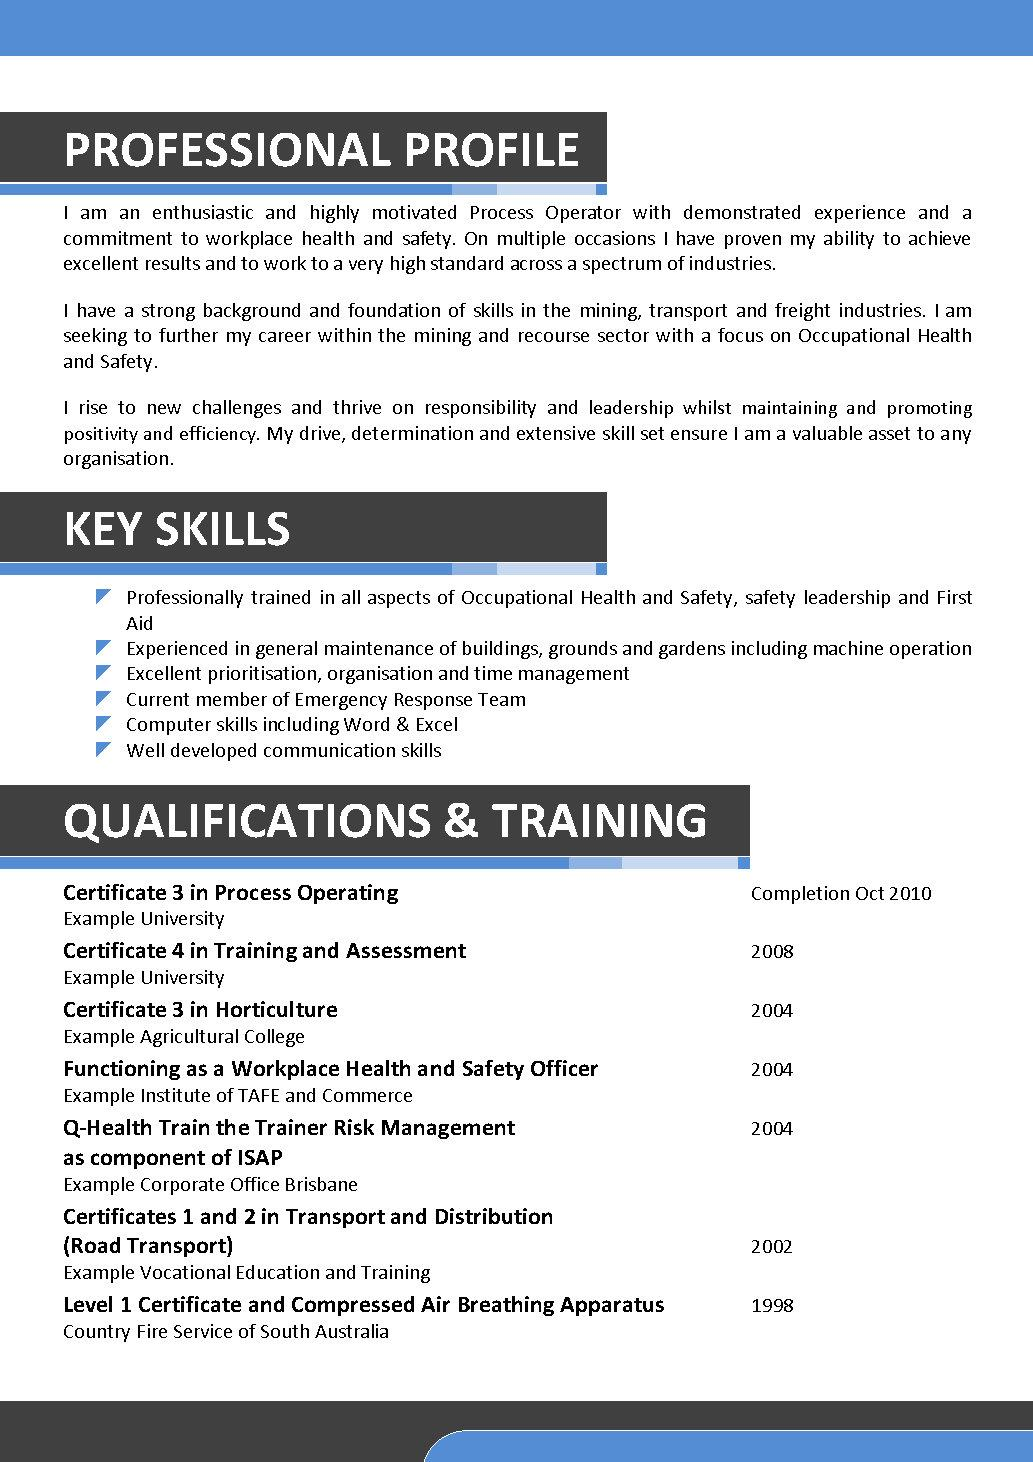 Cover letter sample for cna with no experience 1000 for Cna cover letter with little experience